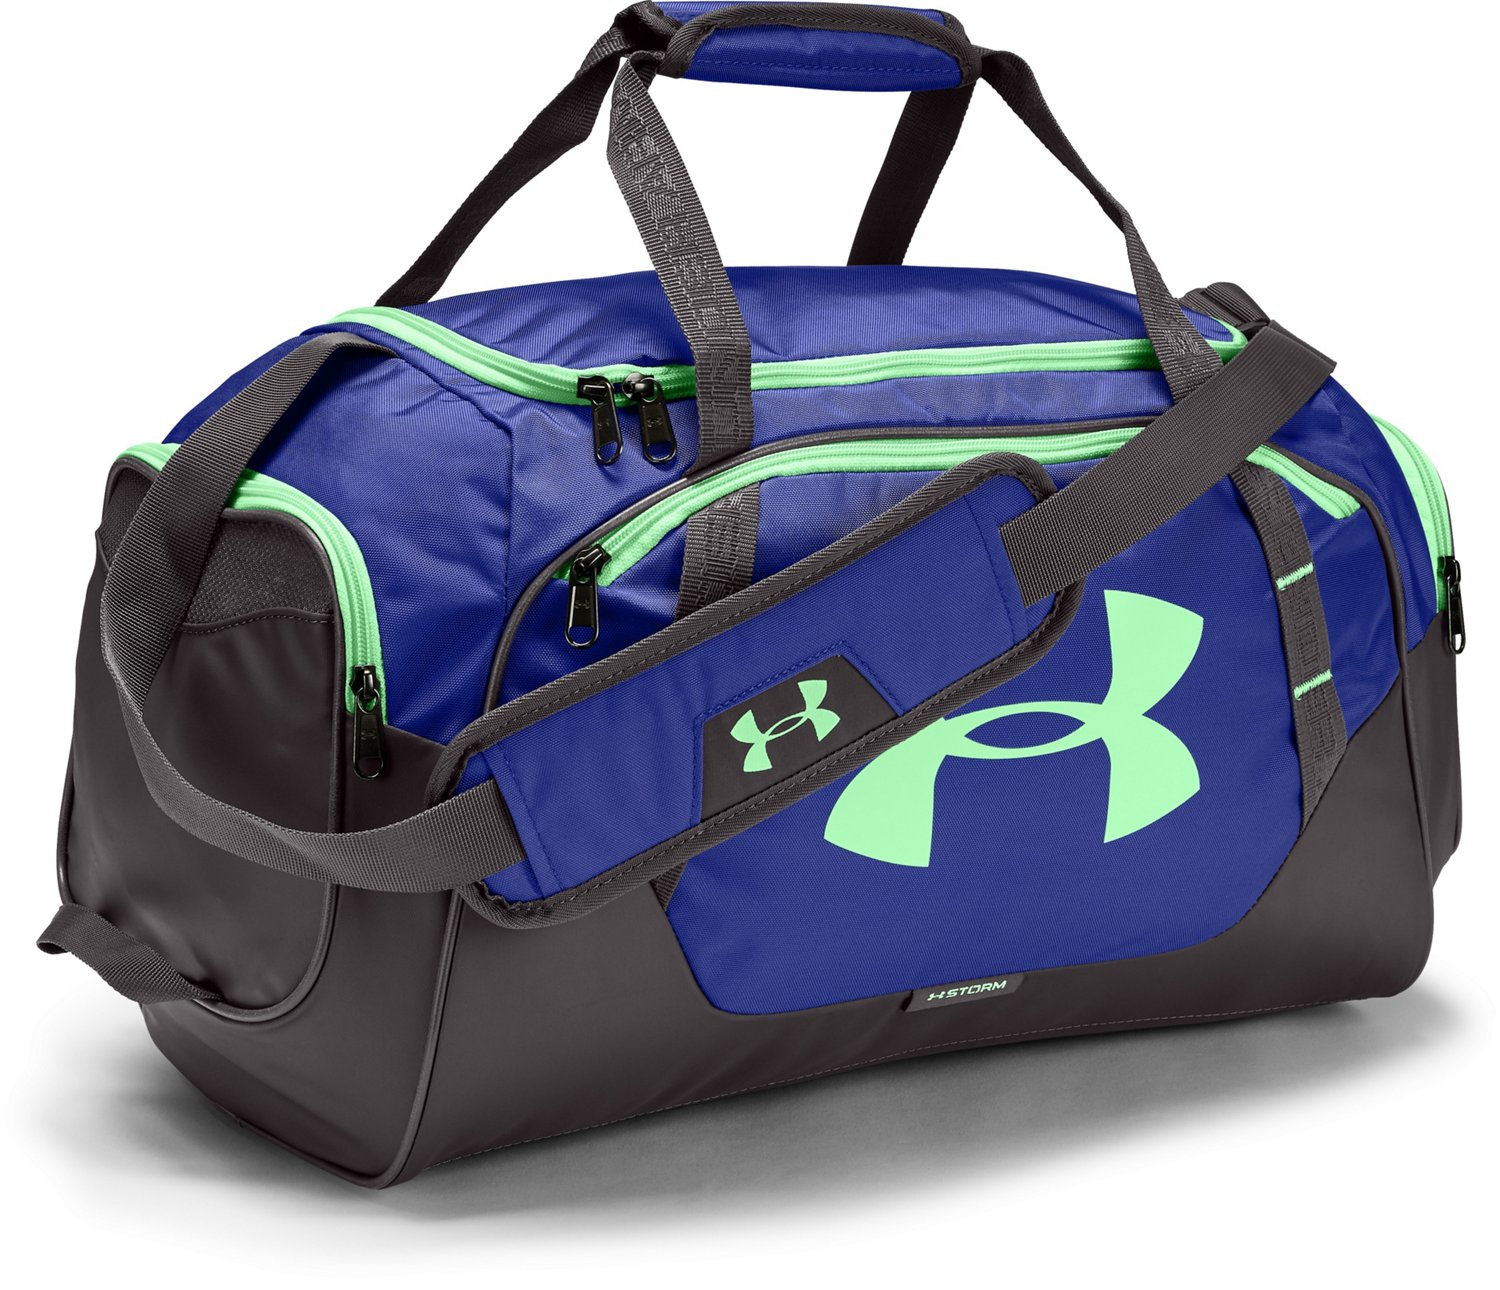 929703a1fe Display product reviews for Under Armour Undeniable II Small Duffel Bag